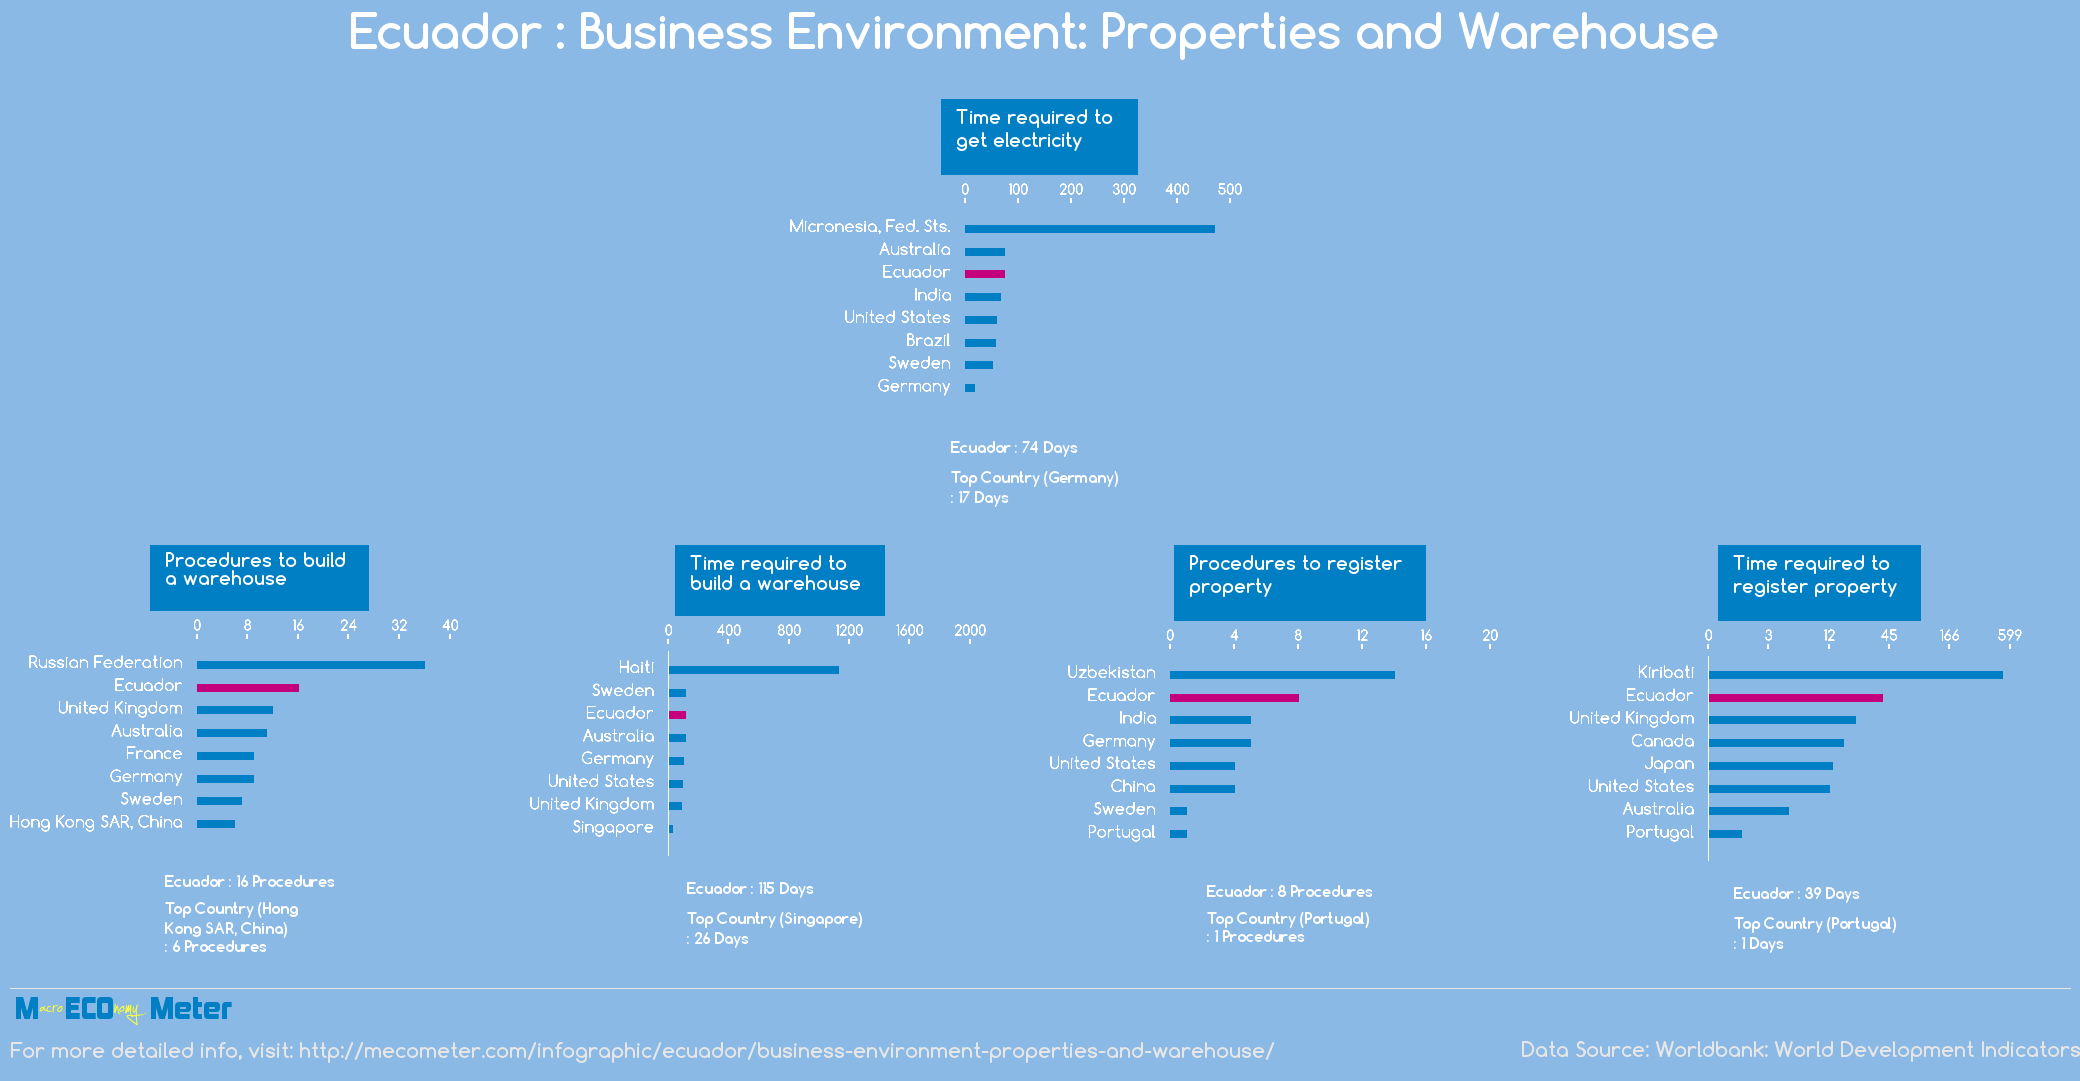 Ecuador : Business Environment: Properties and Warehouse